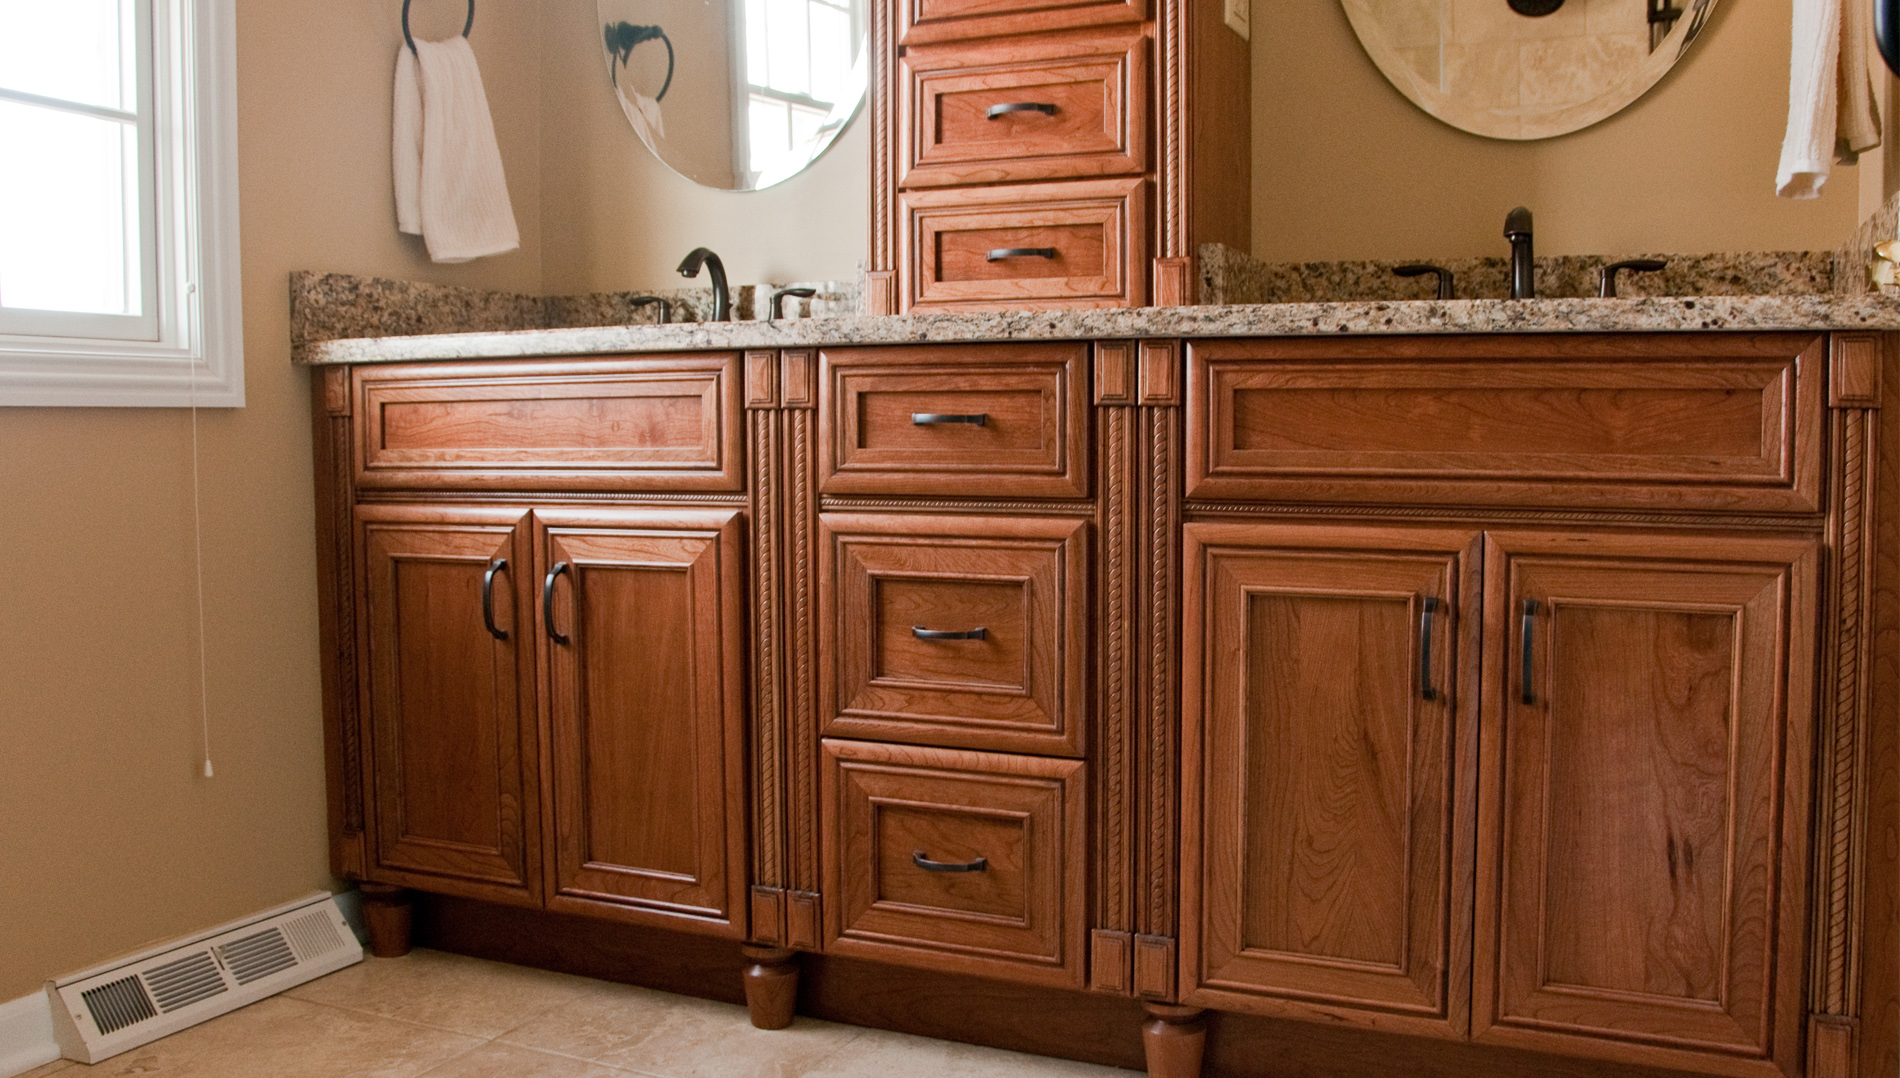 With Refacing Kitchen Cabinets Omaha Ne Also Image Of Kitchen And Bath